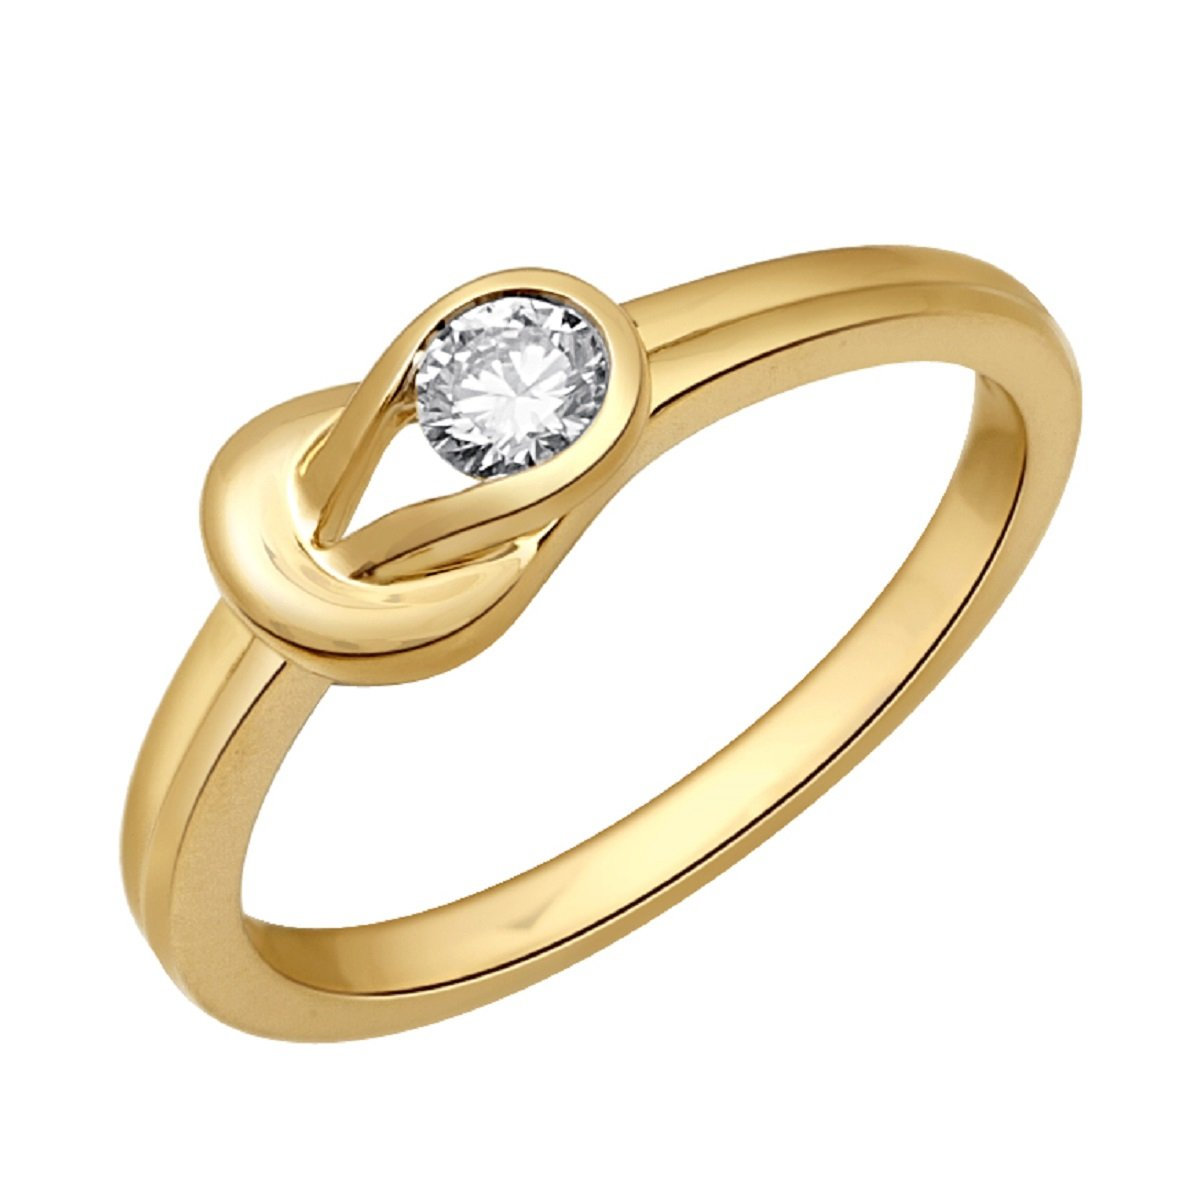 Christmas Gift, Anniversary, Wedding, Engagement Jewel Ivy 18K Gold Ring (US-7 Size) With 0.18 Carat Solitaire Diamond (SI1-SI2-GHI)